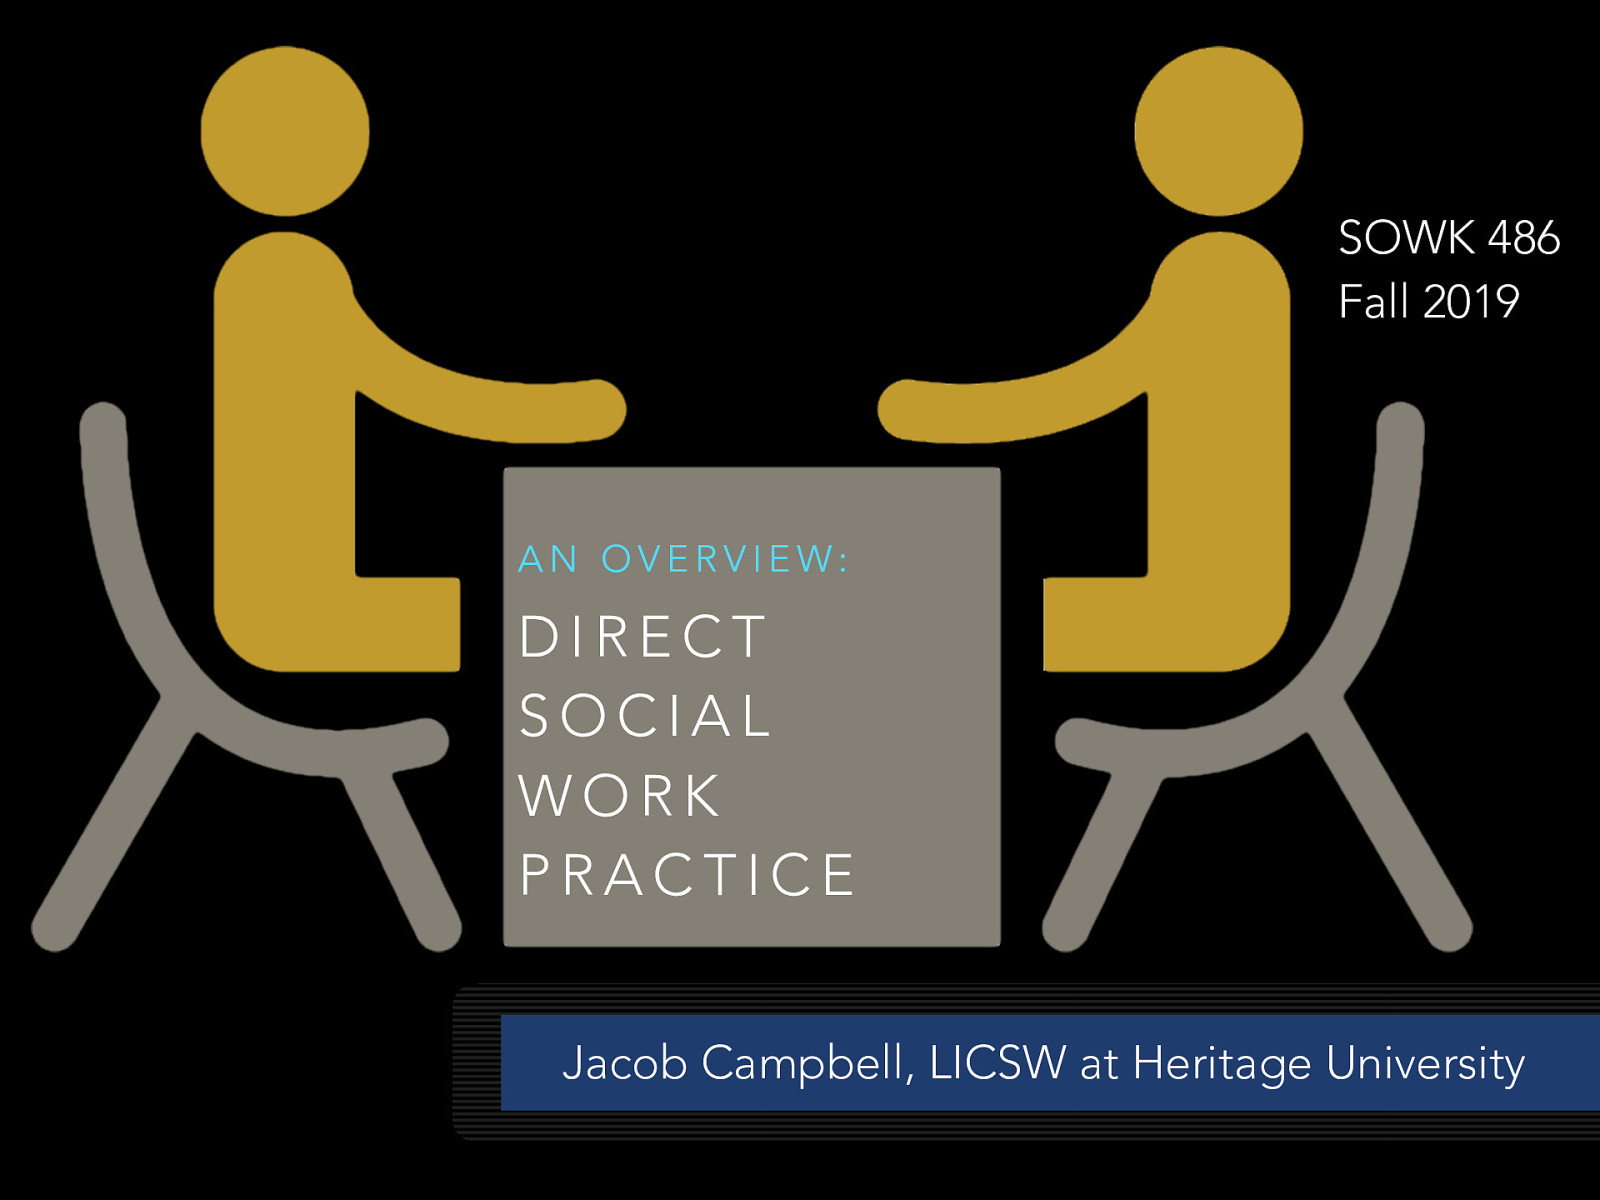 Week 03 - An Overview of Direct Social Work Practice